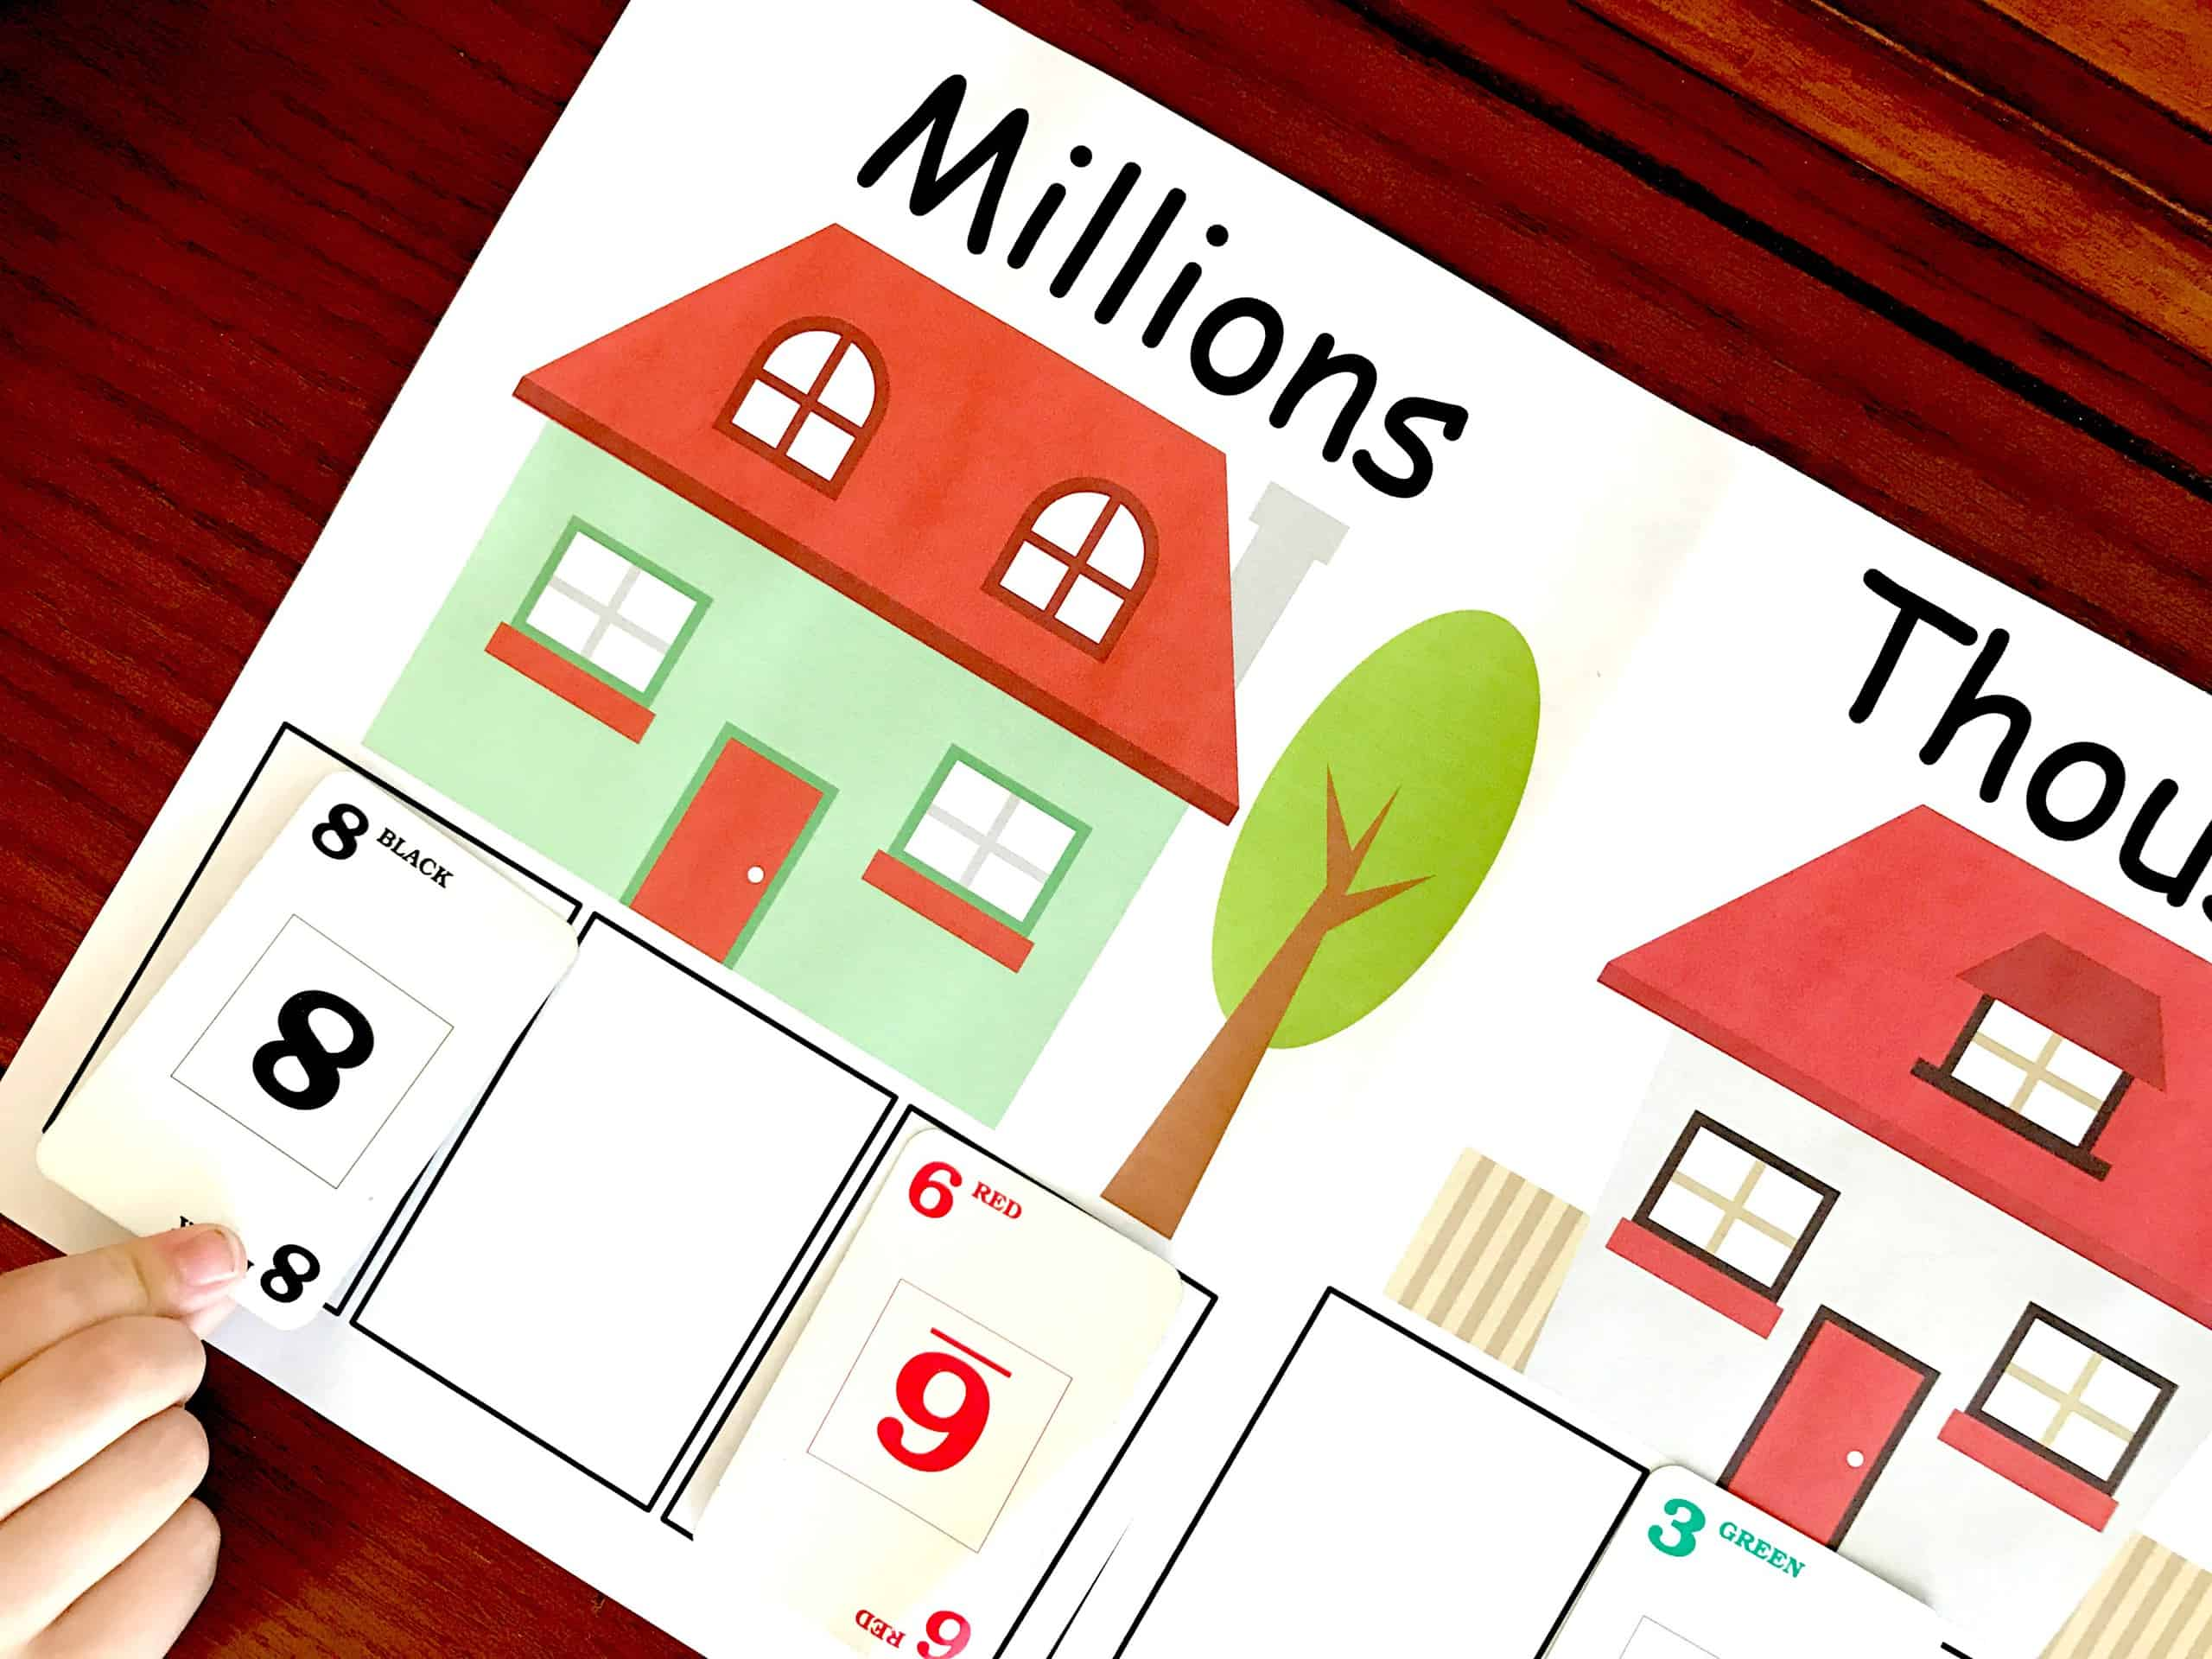 image about Printable Place Value Game identified as 30 Simple Math Online games For Practising Math Strategies and Techniques